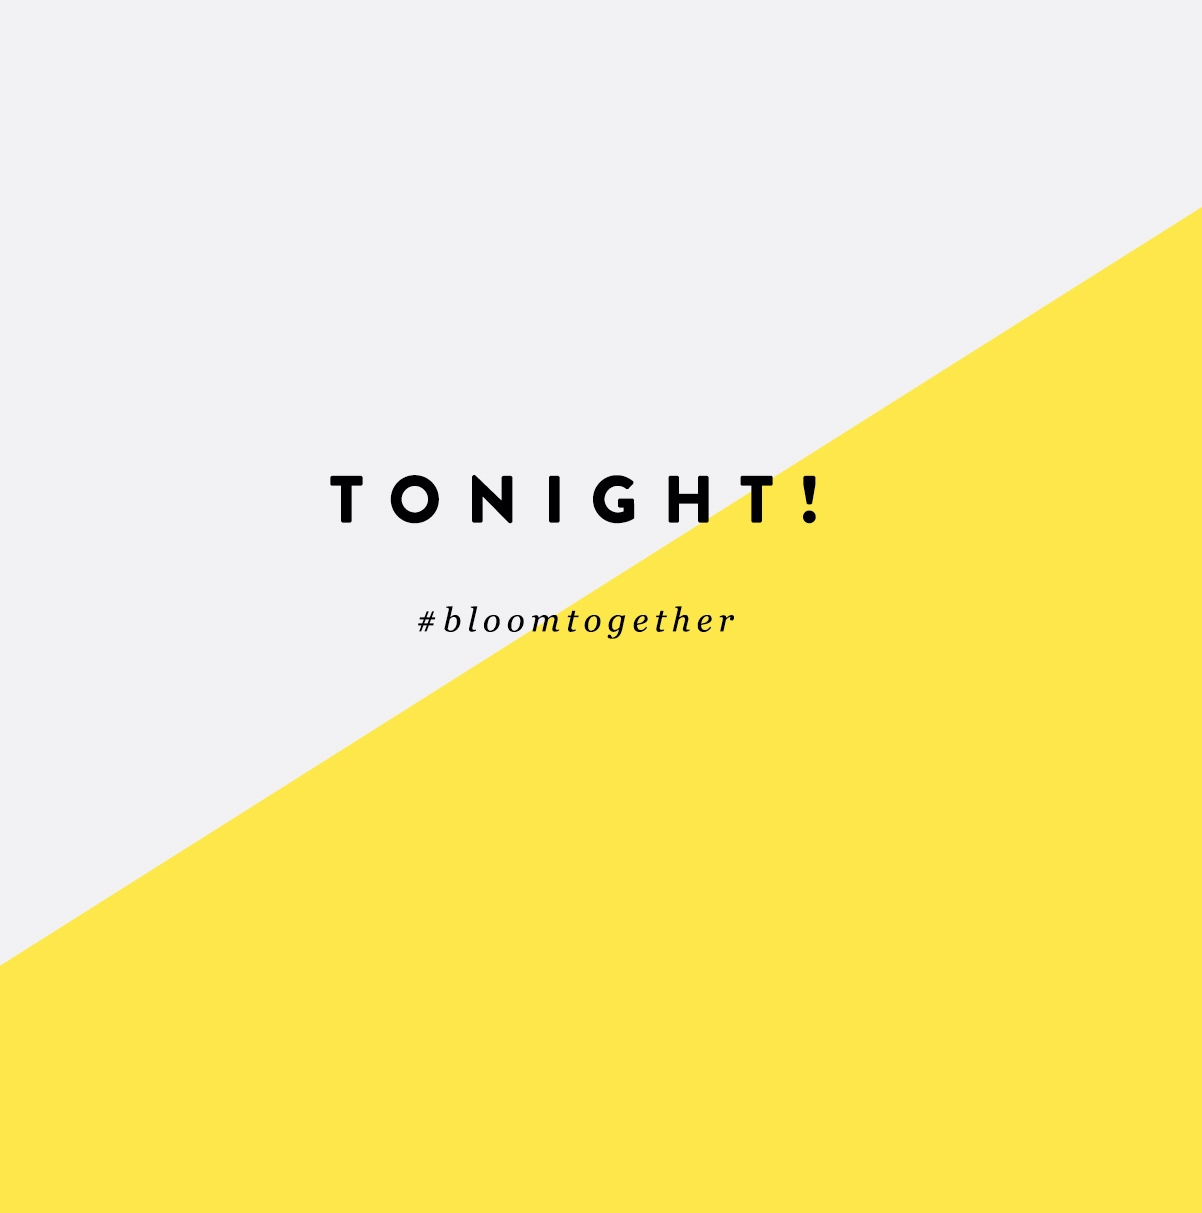 BLOOMTOGETHERTONIGHT